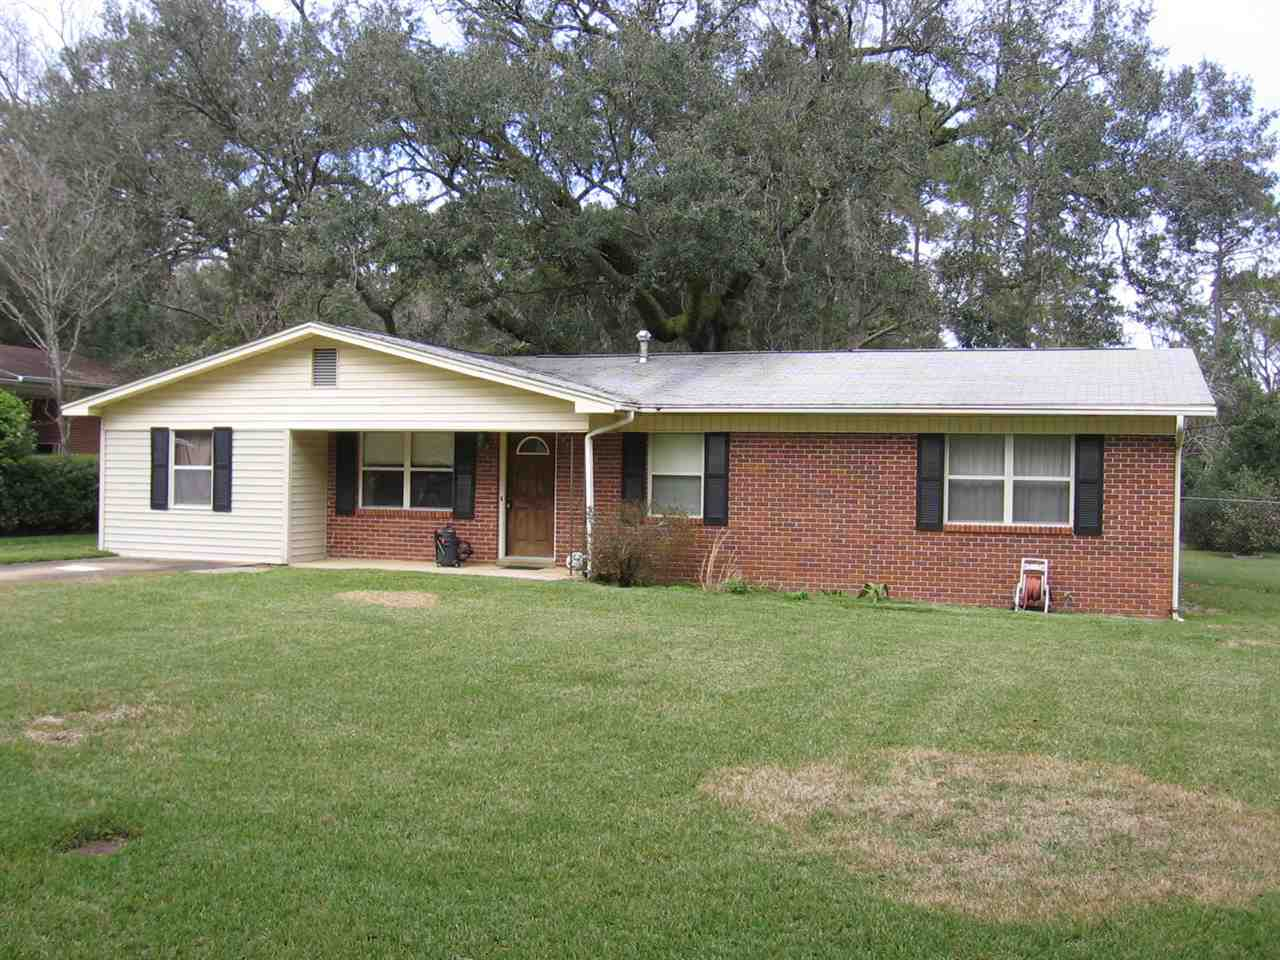 $169,900 - 4Br/2Ba -  for Sale in Parkside, Tallahassee